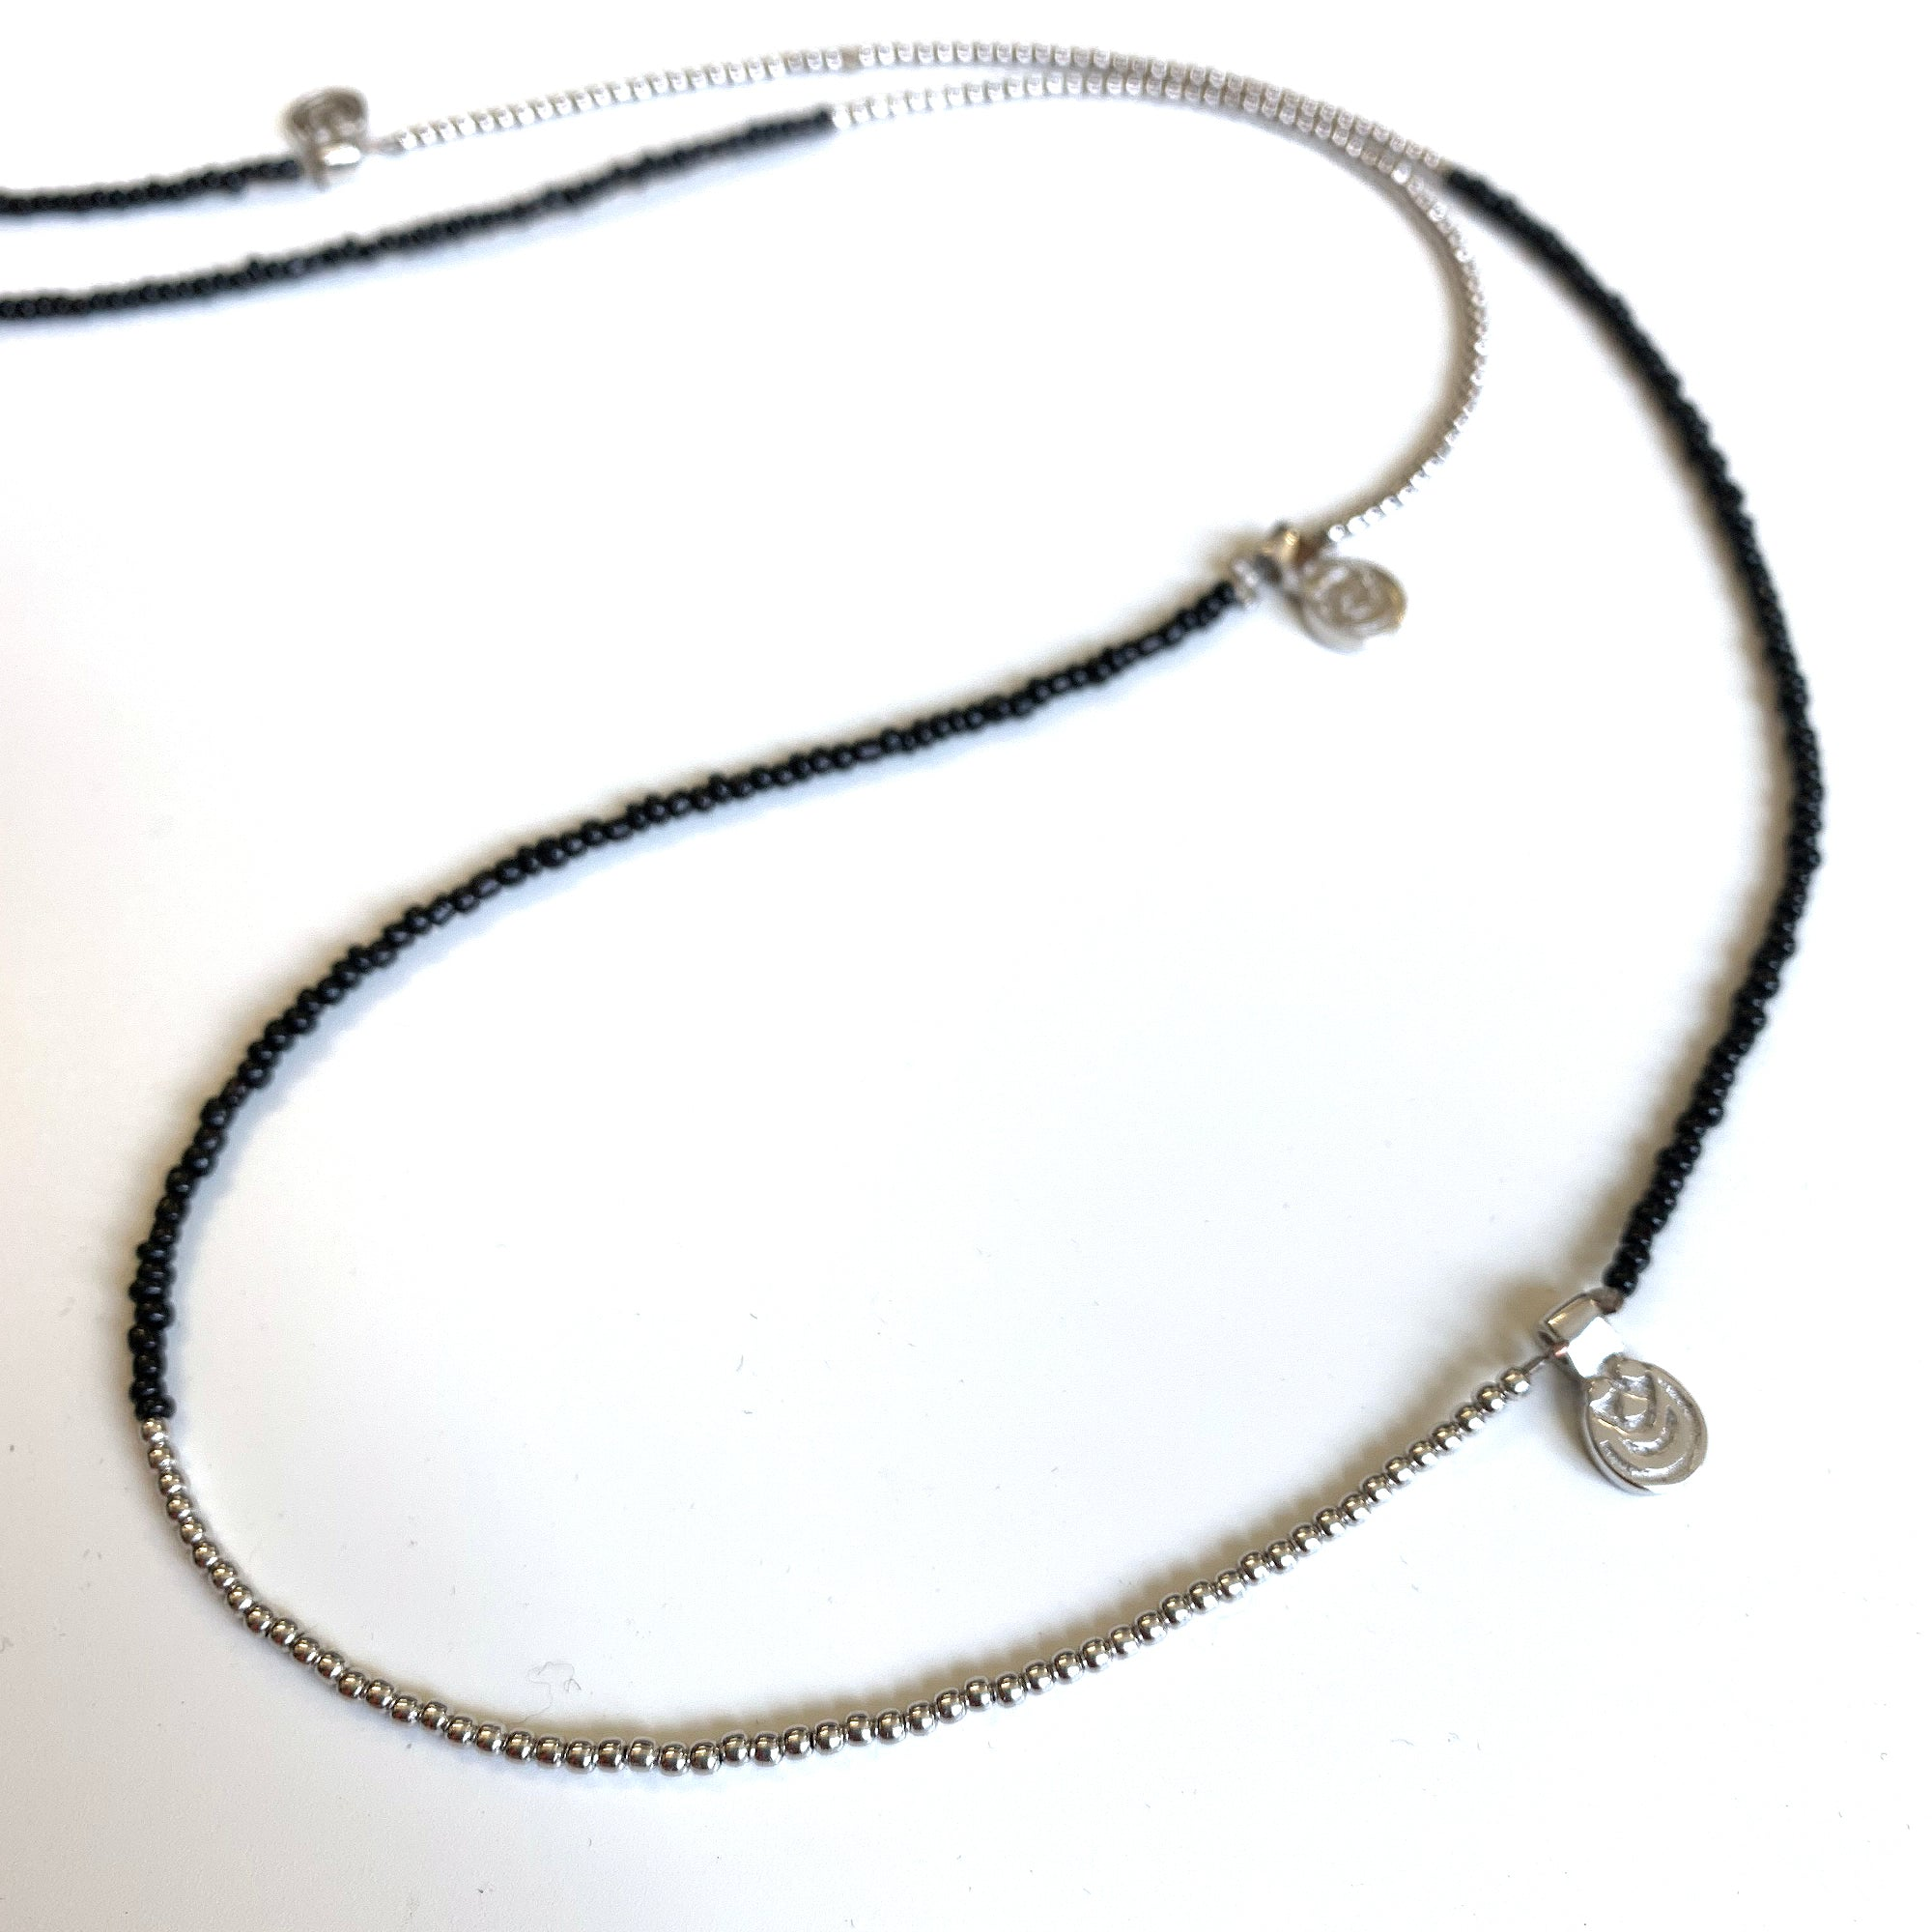 SILVER BEADS LONG CHARM NECKLACE